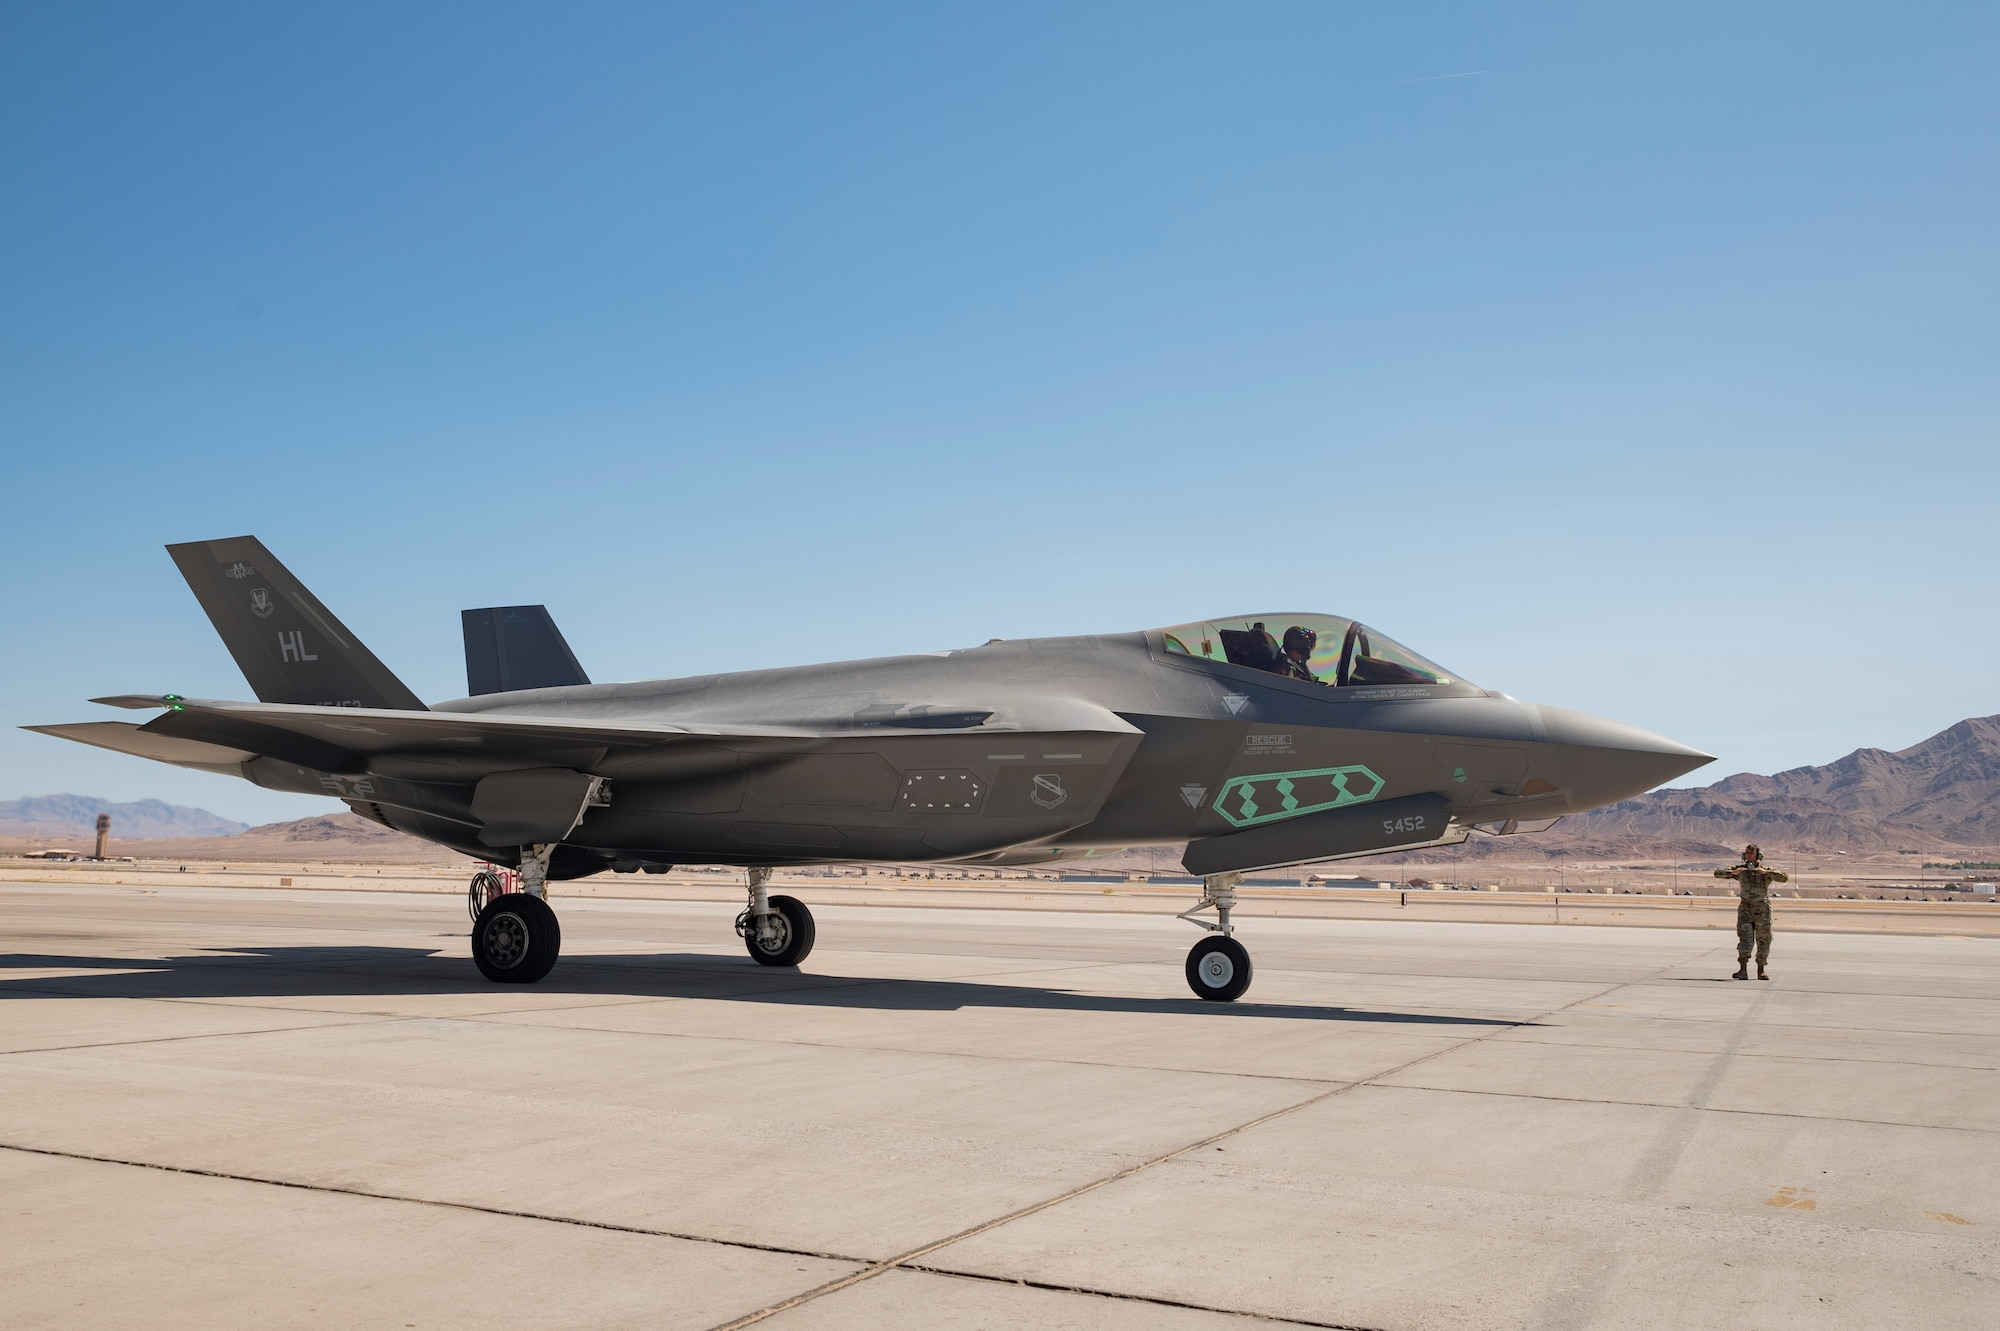 Airman 1st Class Javier Farcia-Bustos marshals an F-35A Lightning II as it taxis to complete the final test exercise of the nuclear design certification process at Nellis Air Force Base, Nevada, Sept. 21, 2021. This event included the first release of the most representative B61-12 test asset from an operationally representative F-35A, resulting in the B61-12 becoming the first F-35 weapon to complete development and intrgration during the aircraft's modernization phase. (U.S. Air Force photo by Airman 1st Class Zachary Rufus)